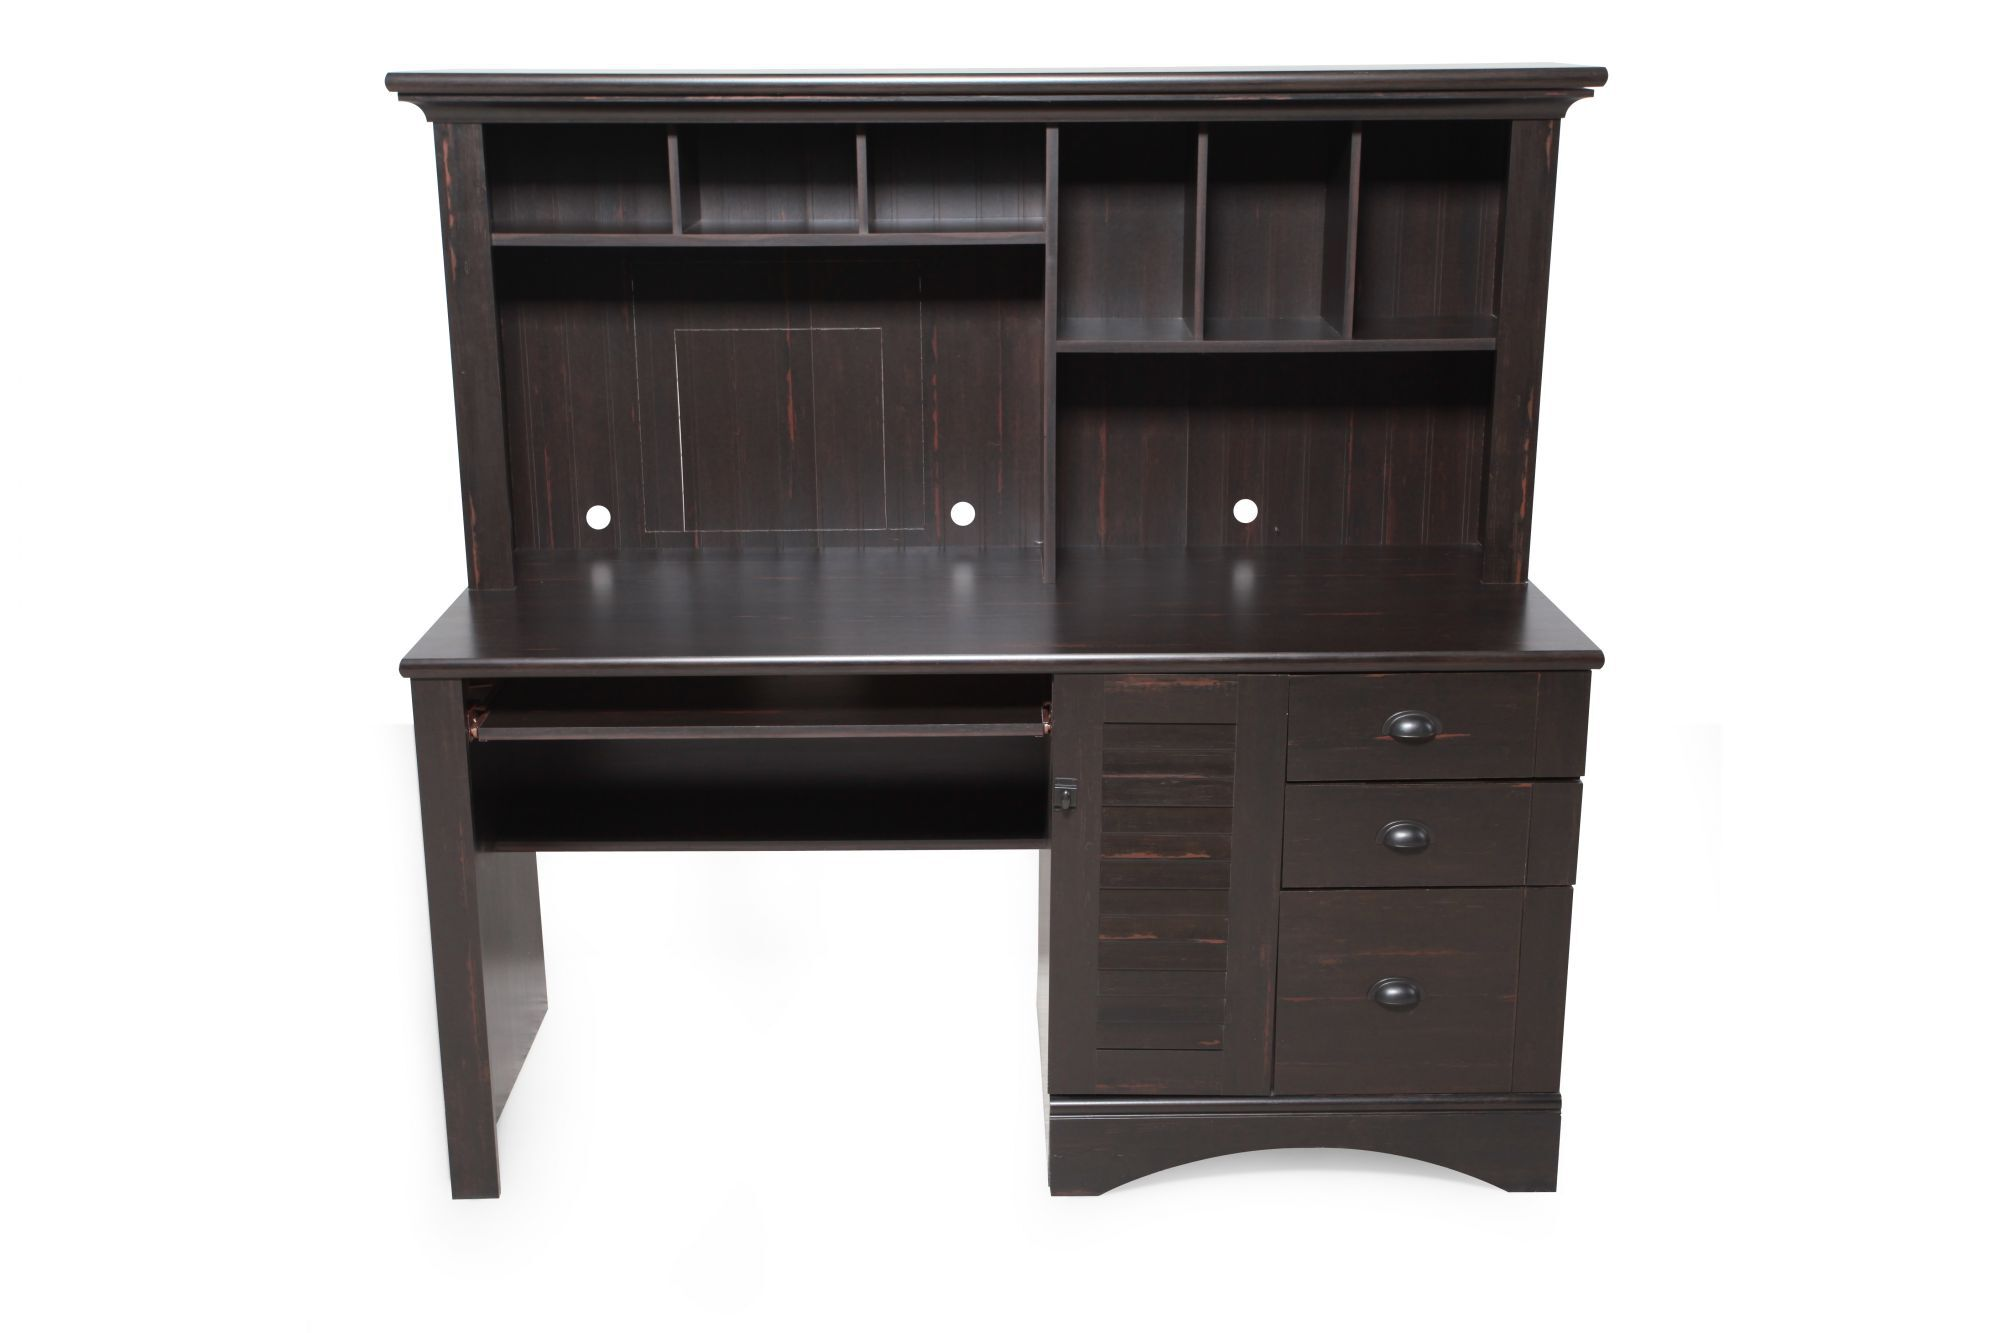 Images 62u0026quot; Casual Computer Desk With Hutch In Antiqued Black 62u0026quot;  Casual Computer Desk With Hutch In Antiqued Black